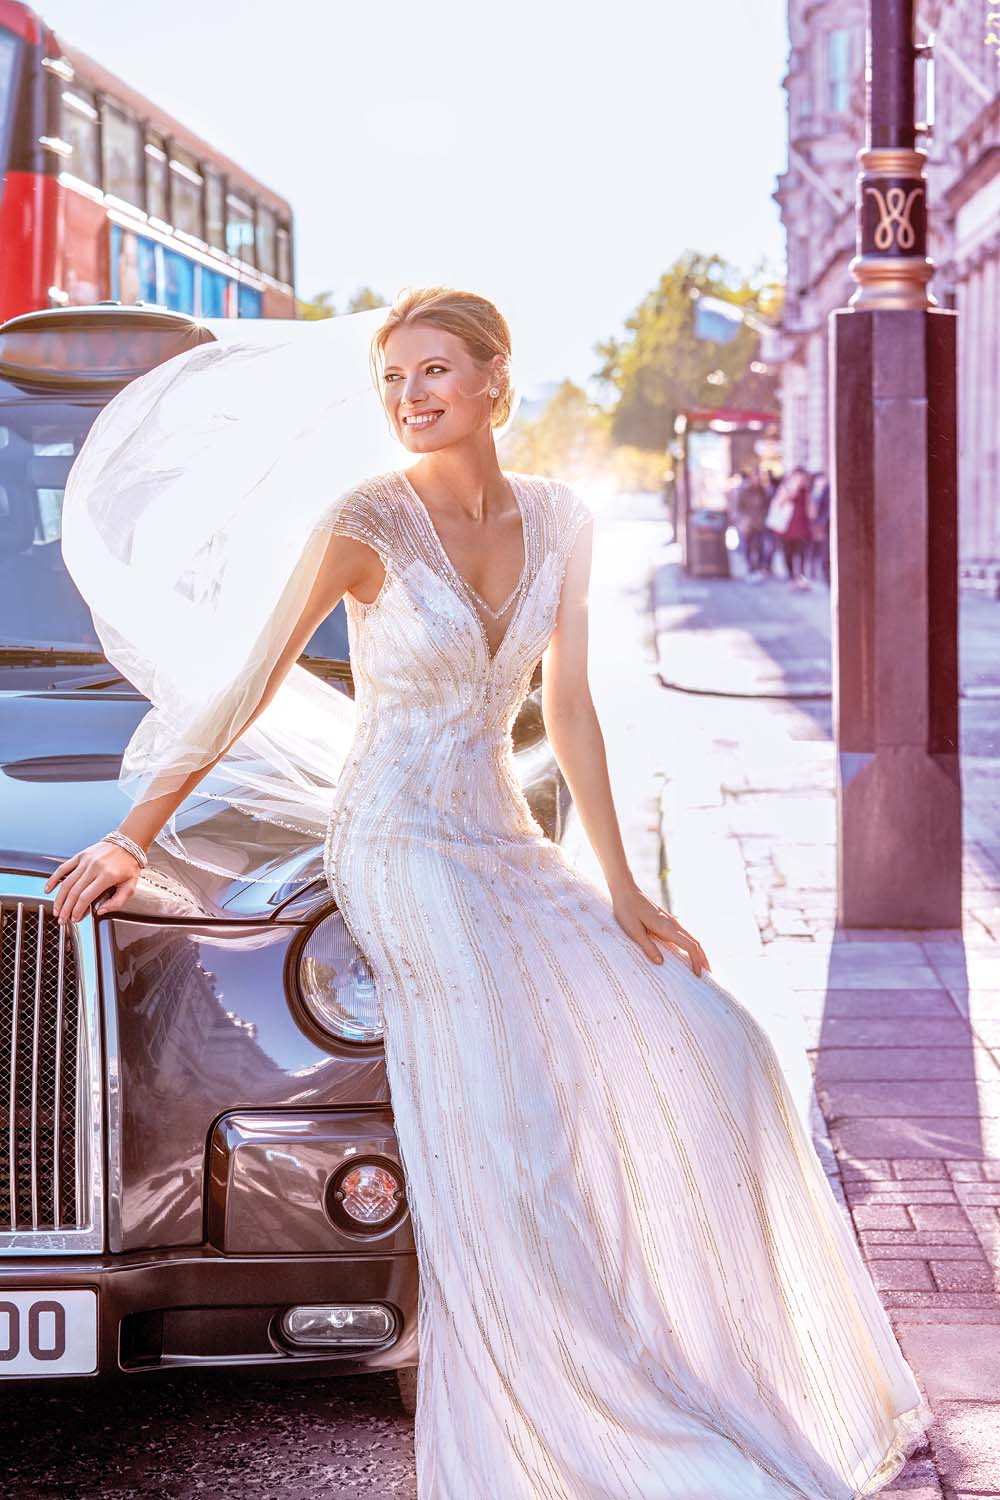 London Is The Perfect Backdrop For These Haute Bridal Gowns - Jenny Packham Dress